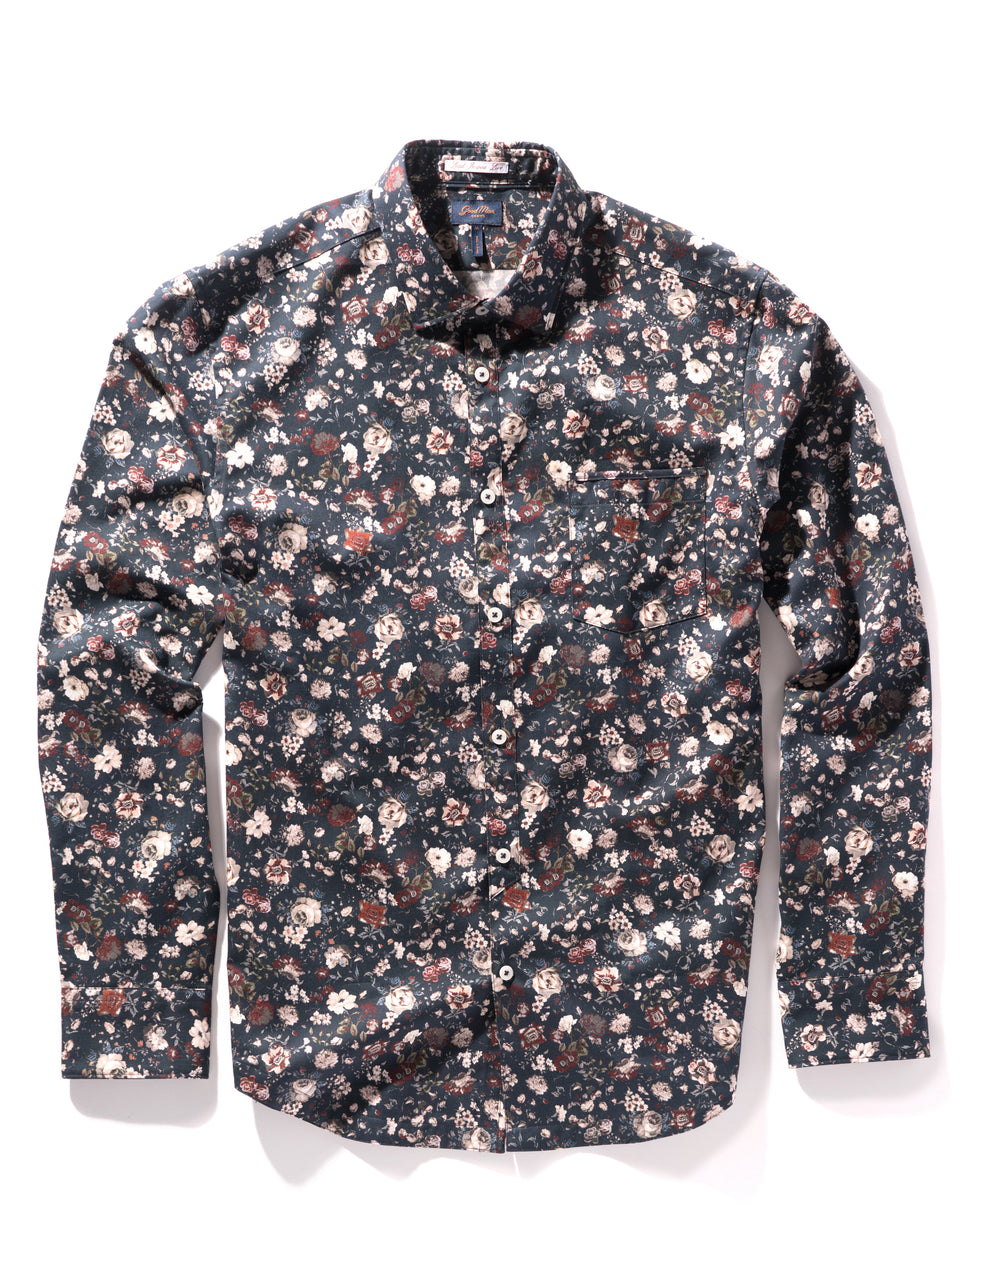 Navy Royal Floral On-Point Print Shirt - Good Man Brand - Navy Royal Floral On-Point Print Shirt